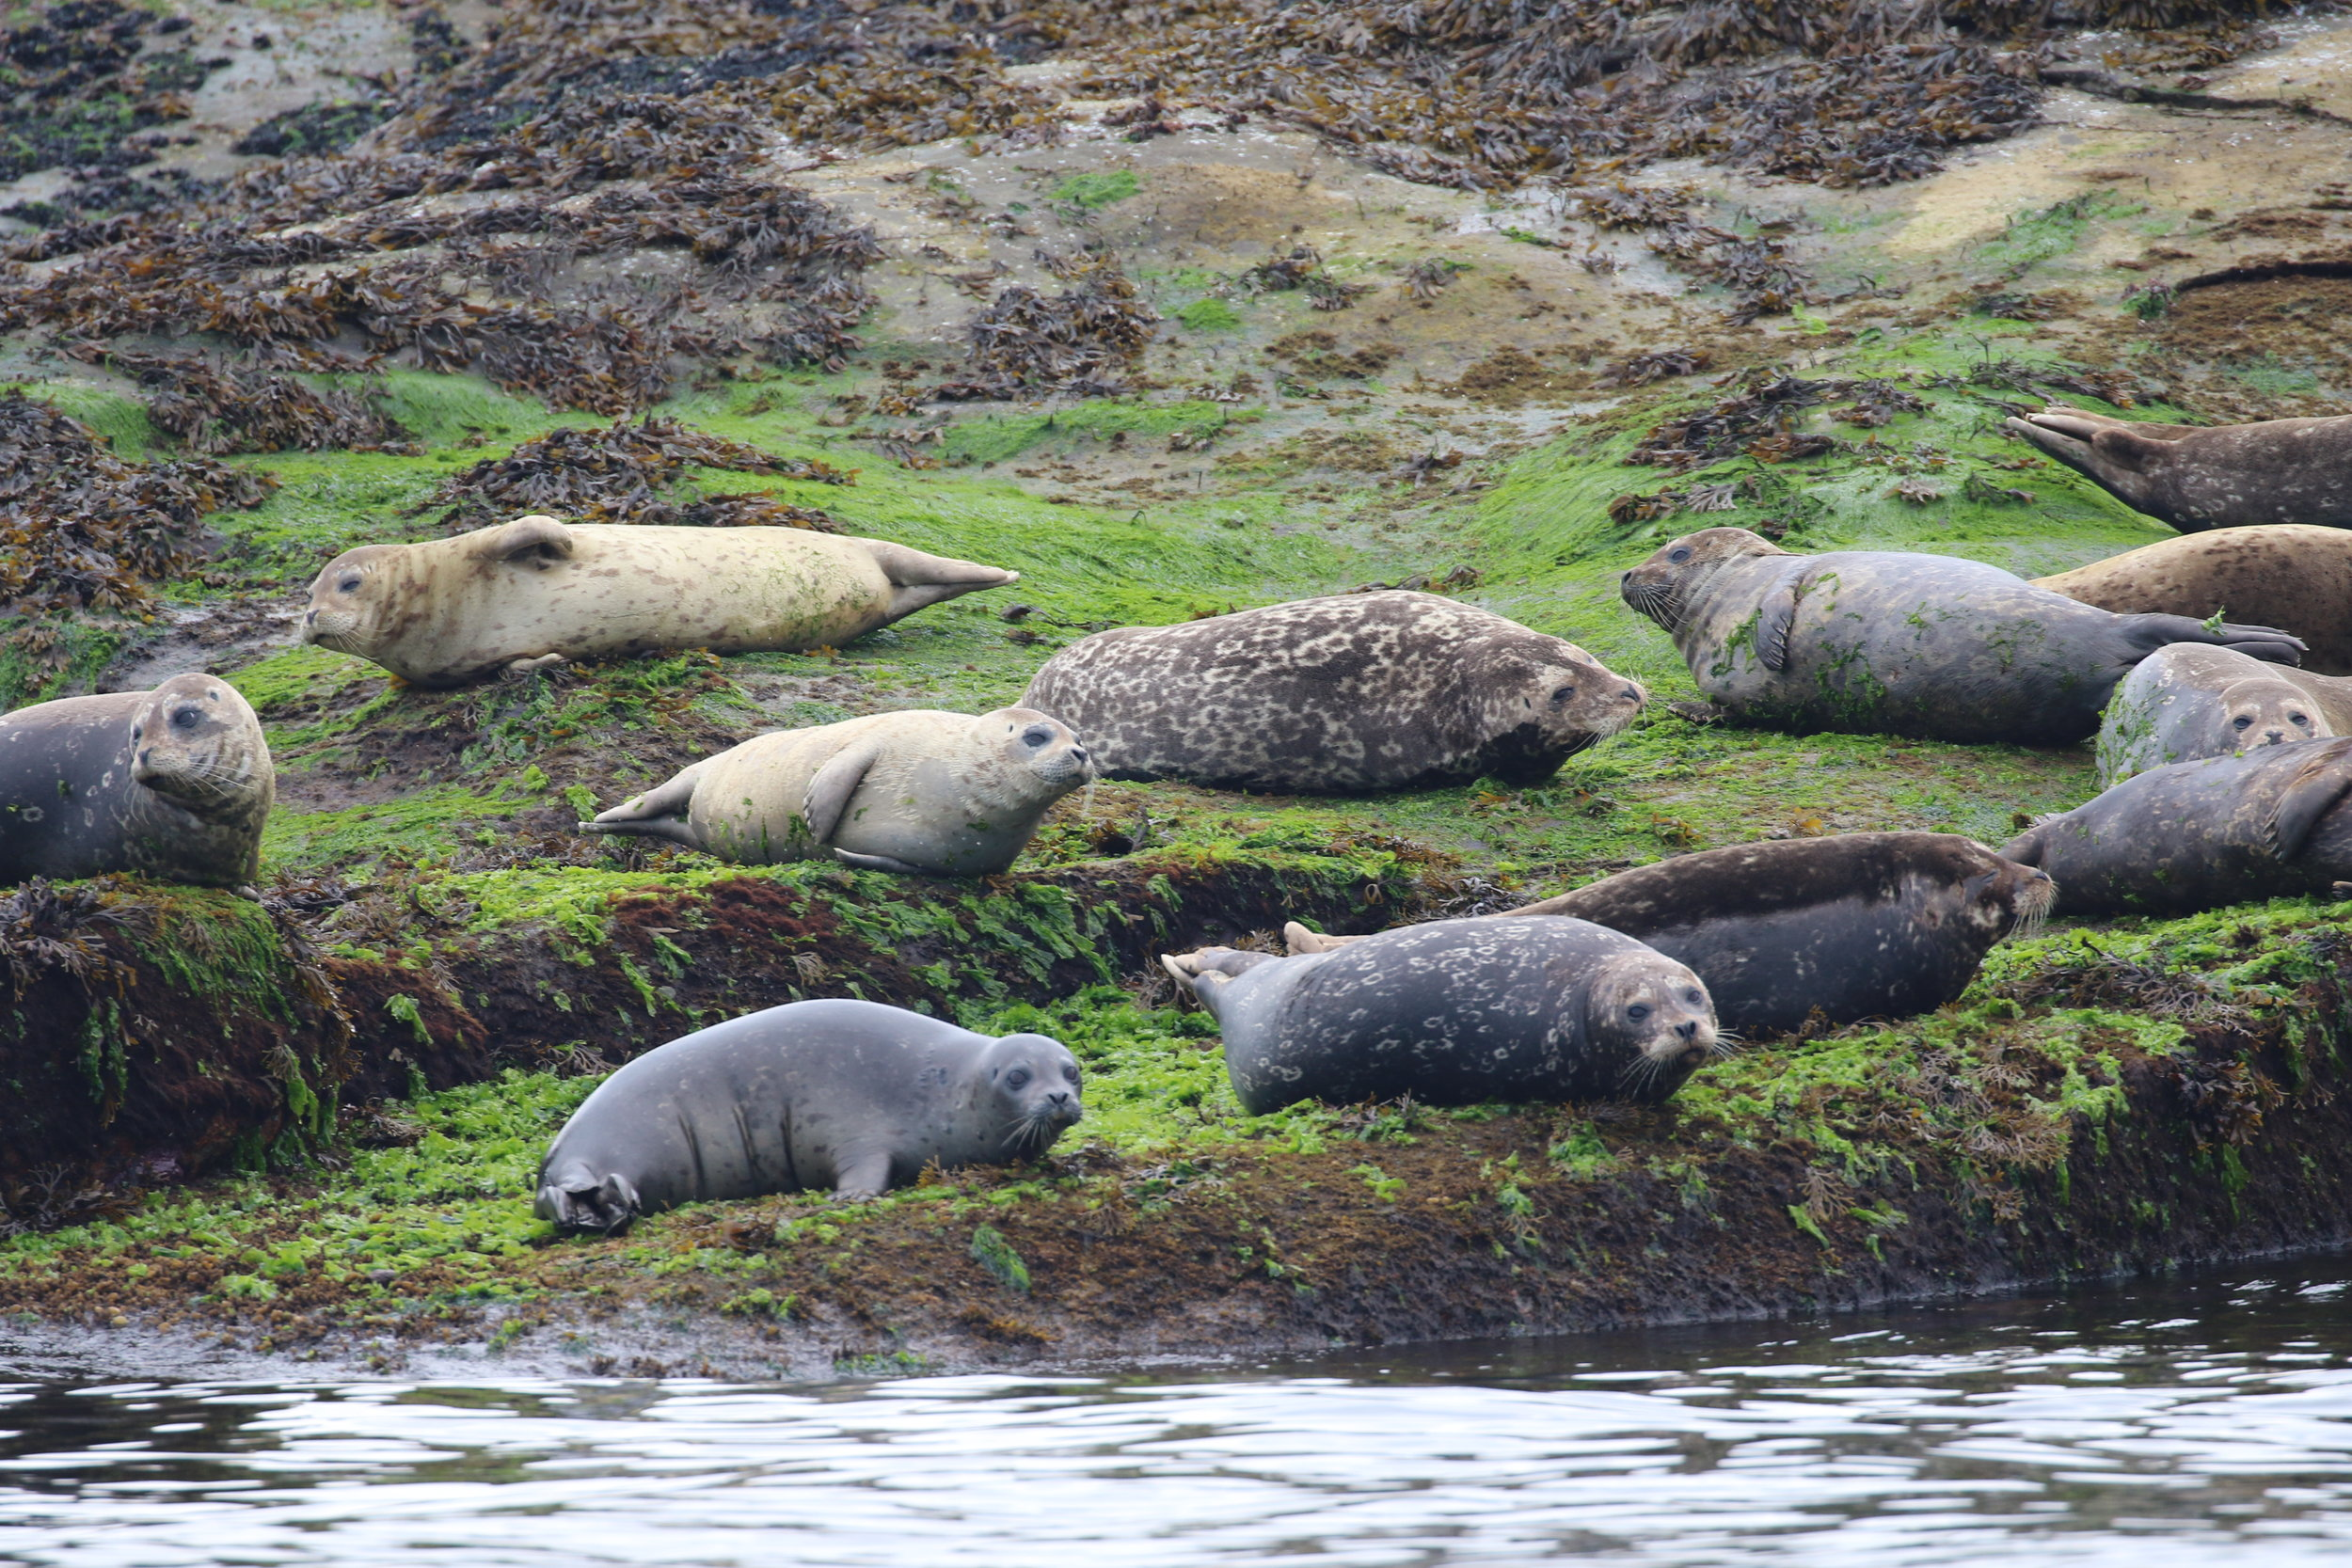 Seals at a haul-out zone. Photo by Ryan Uslu (10:30).